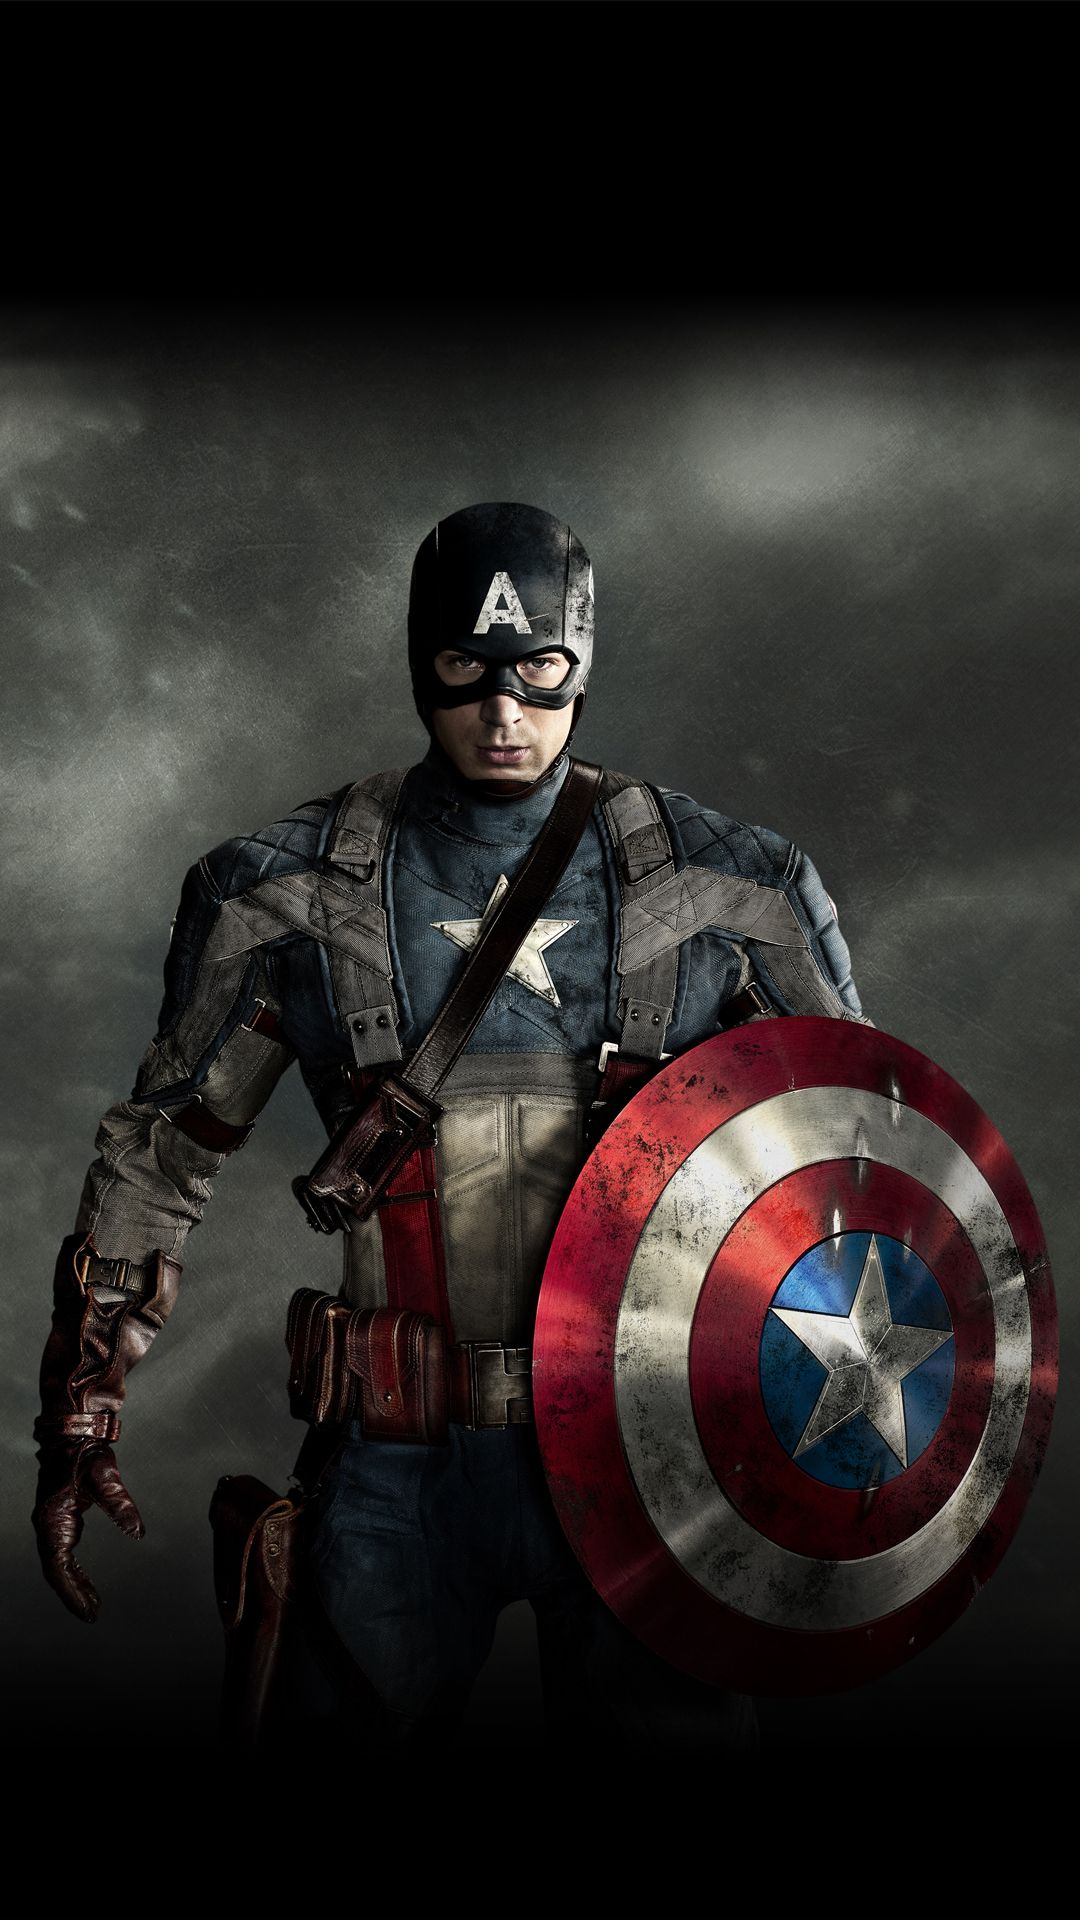 Free download Wallpapers Captain america android wallpapers Android